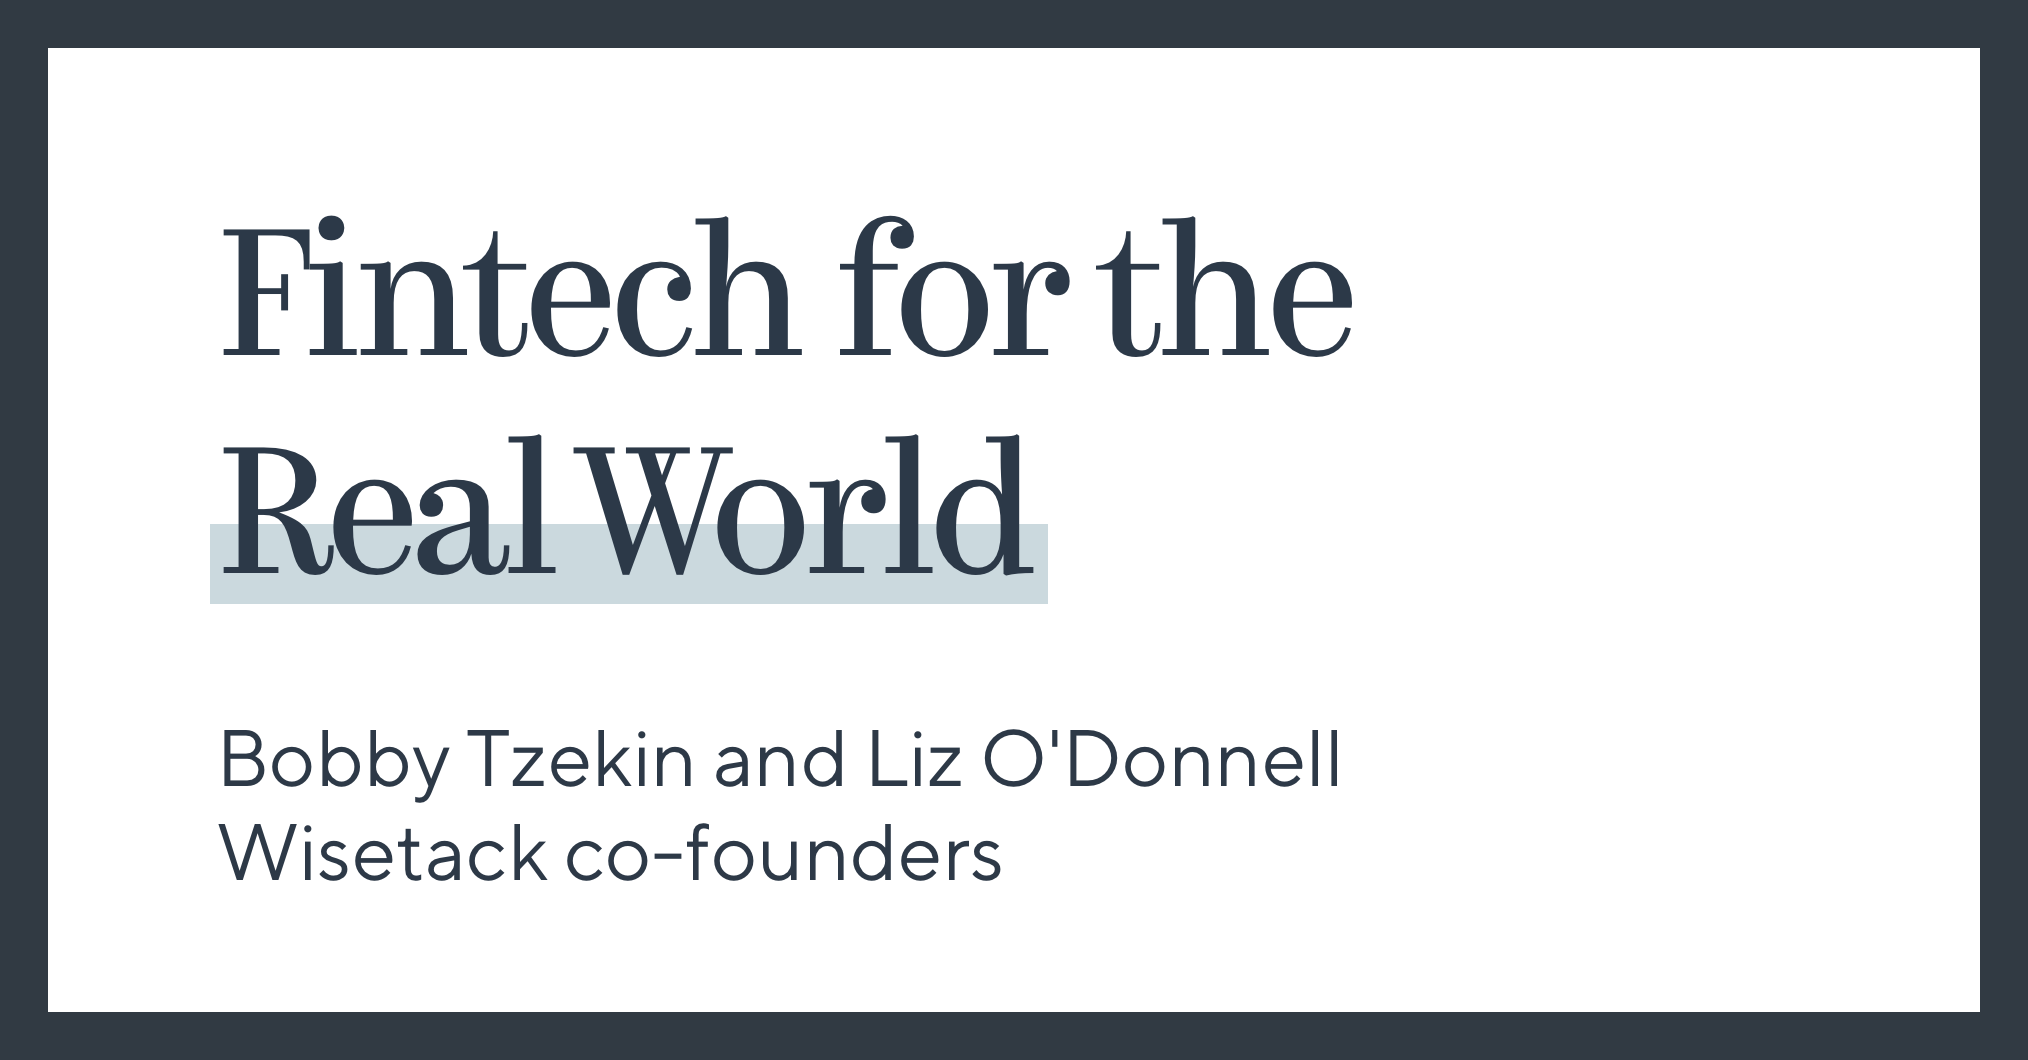 Fintech for the Real World